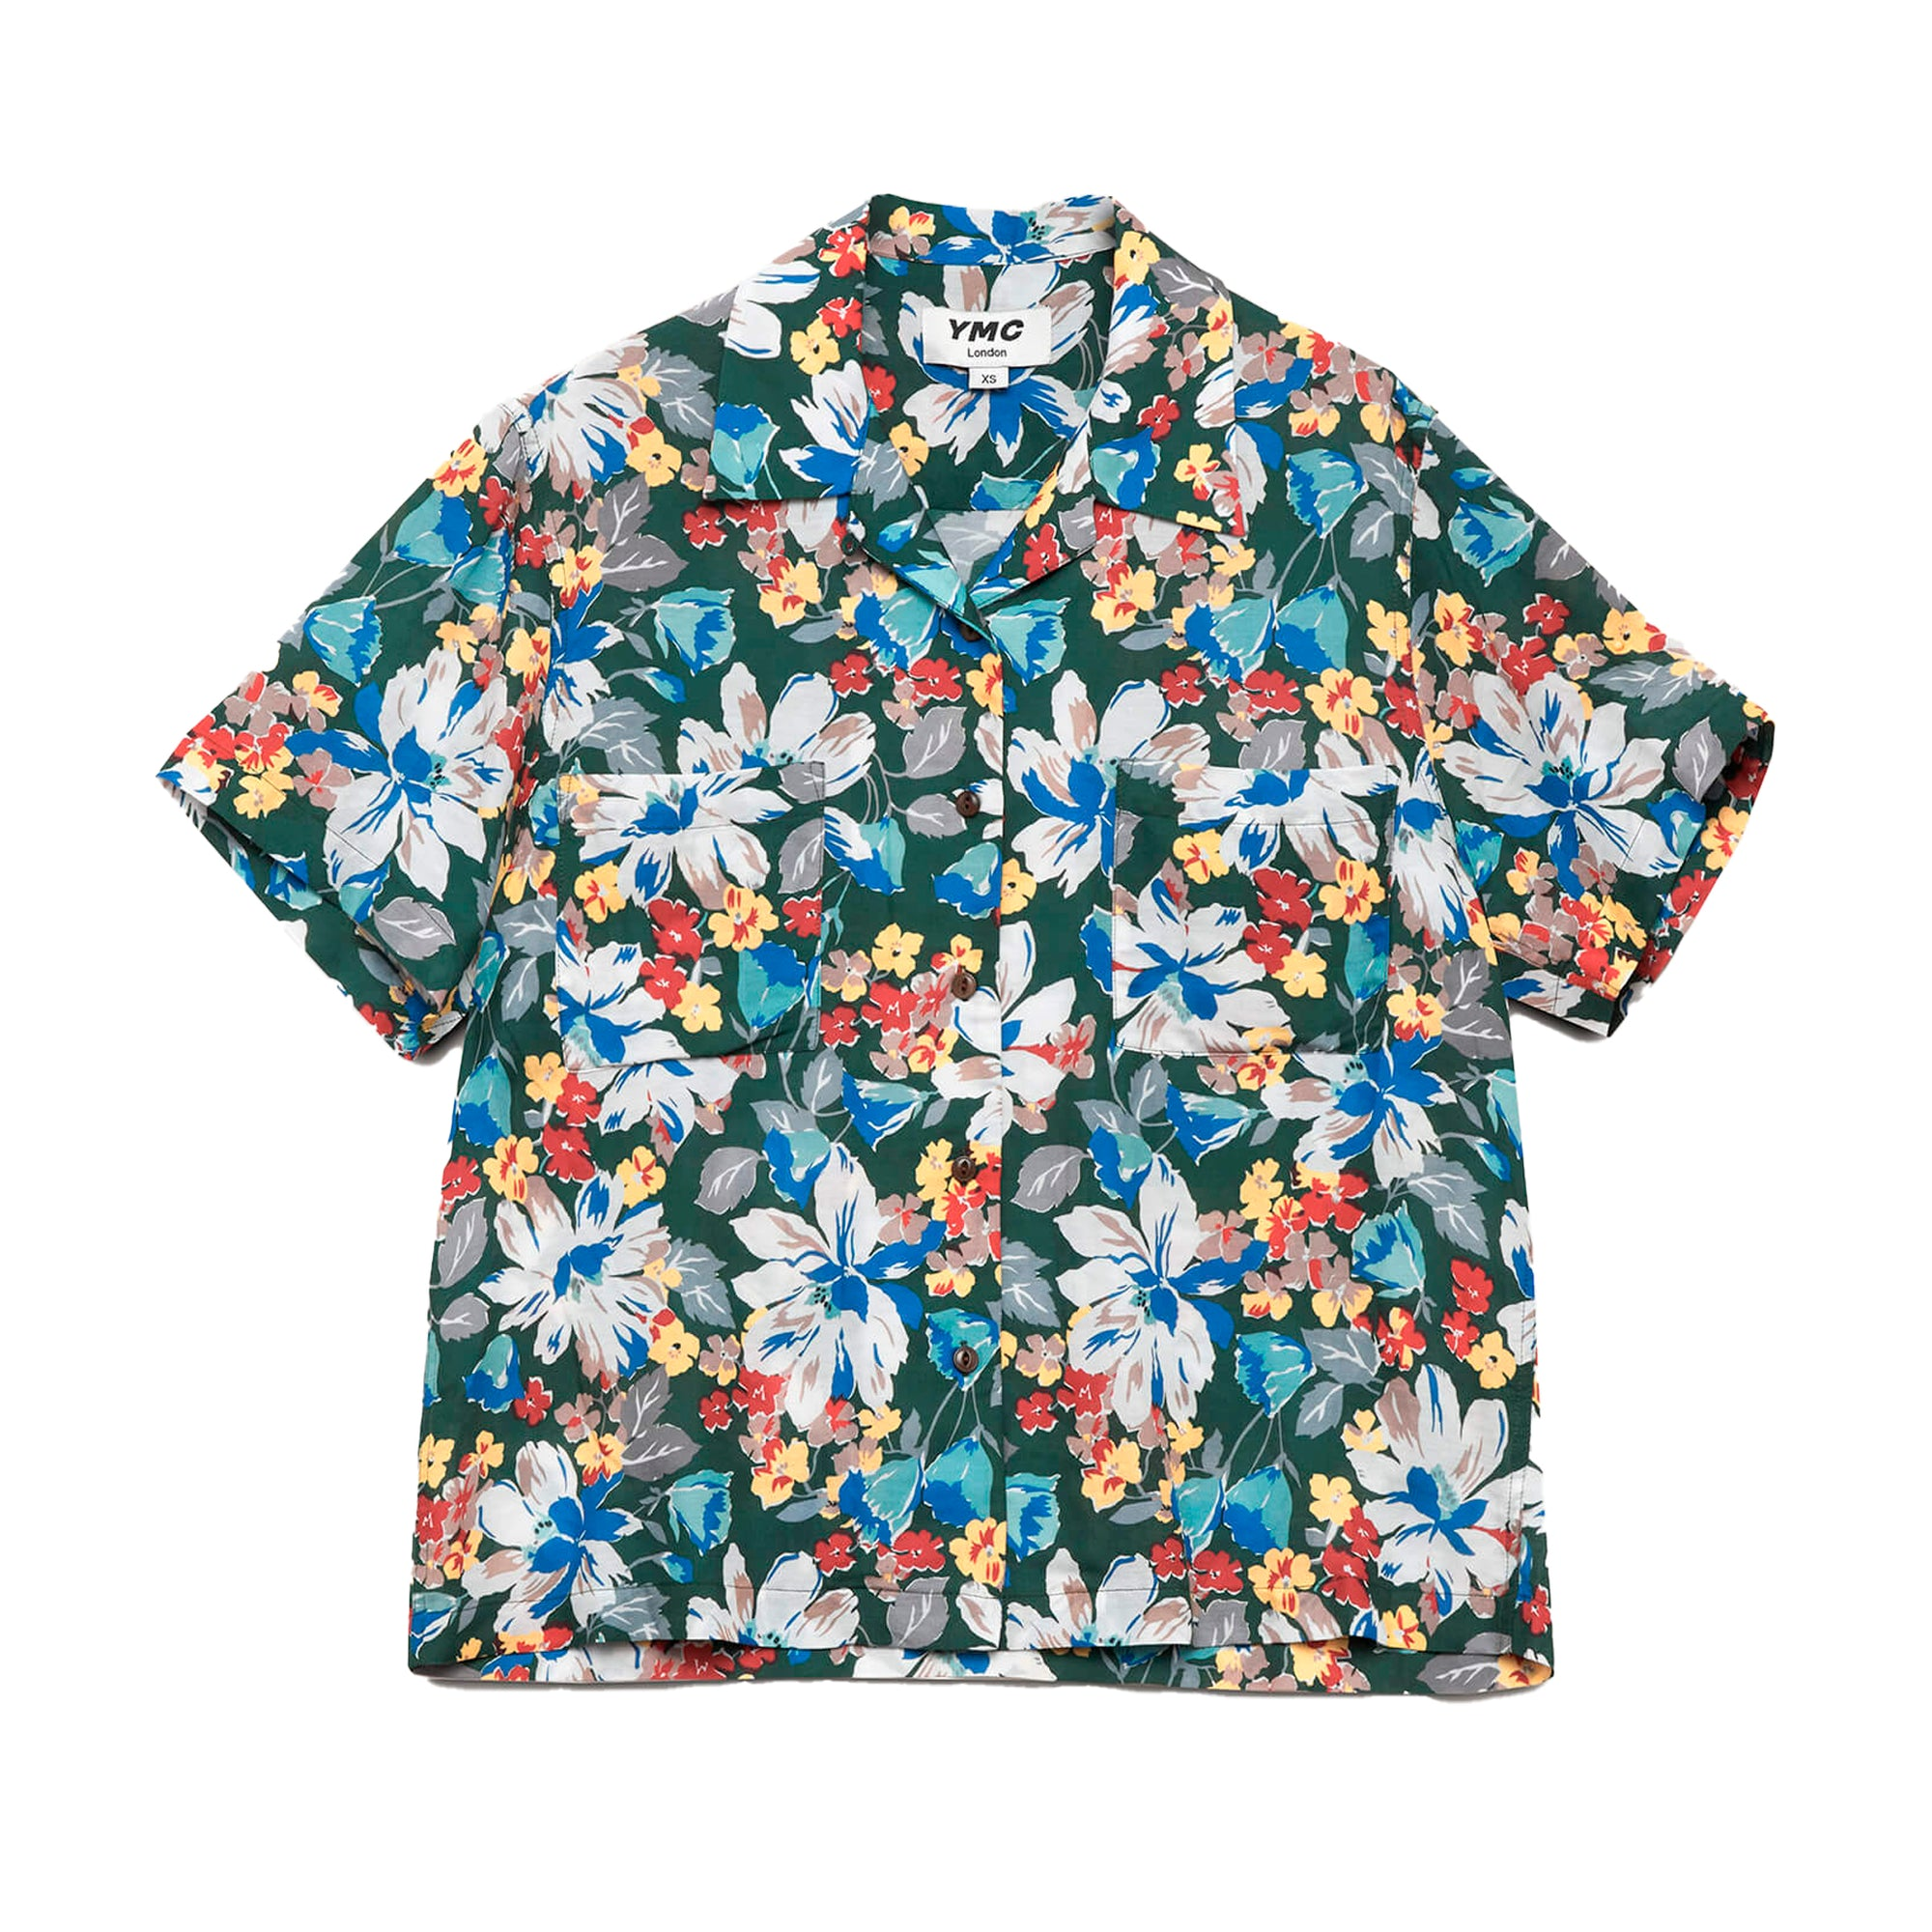 YMC Womens Vegas Shirt: Multi - The Union Project